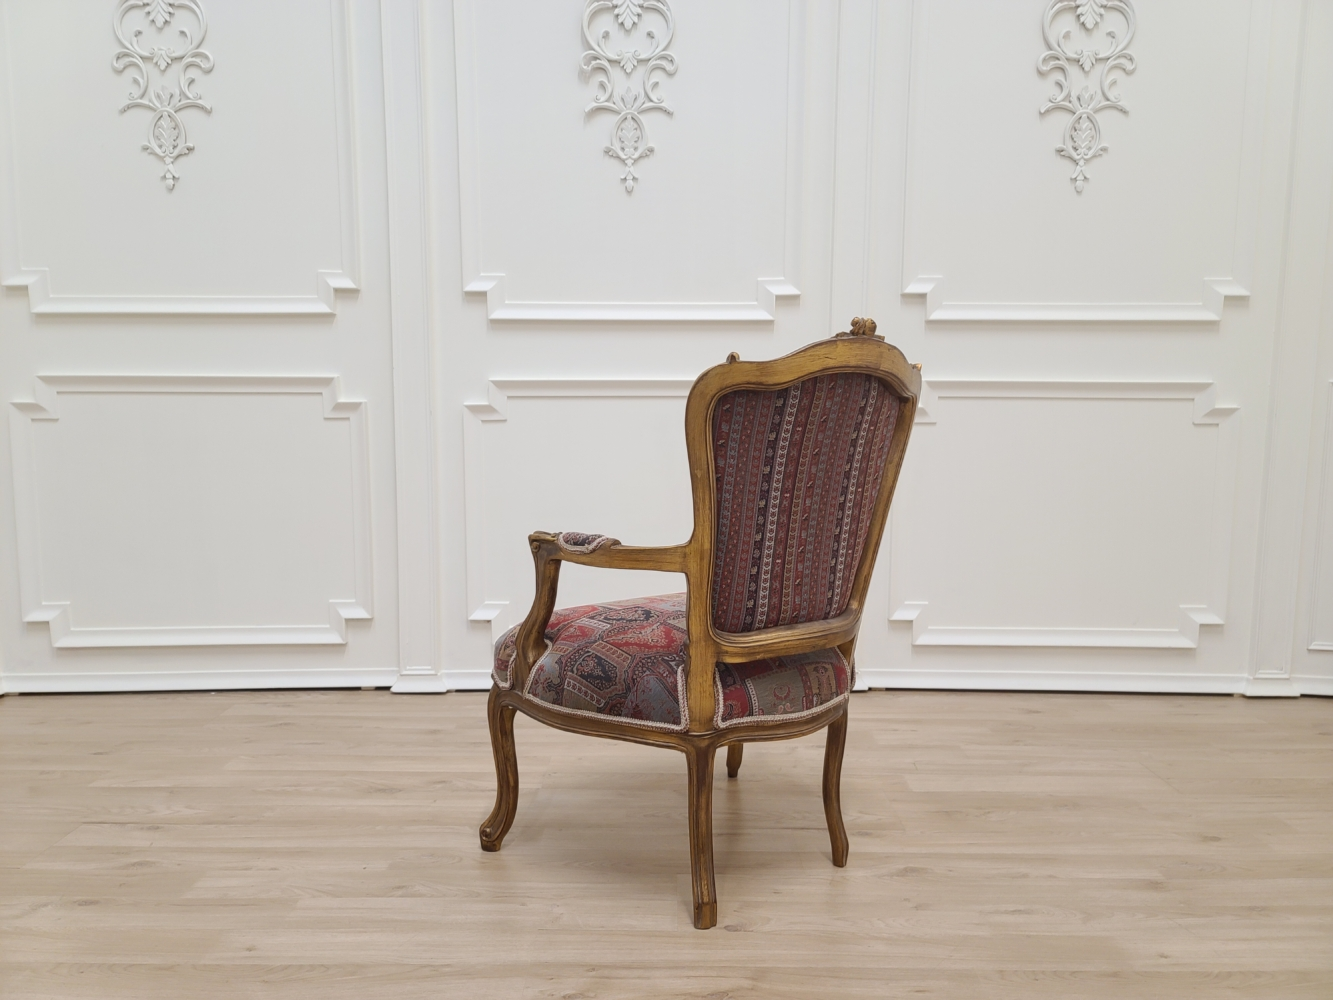 Made To Order / Pair of Louis XVI Style/ Aged gold leaf / Hand Carved Frame / Gobelin fabric Armchair